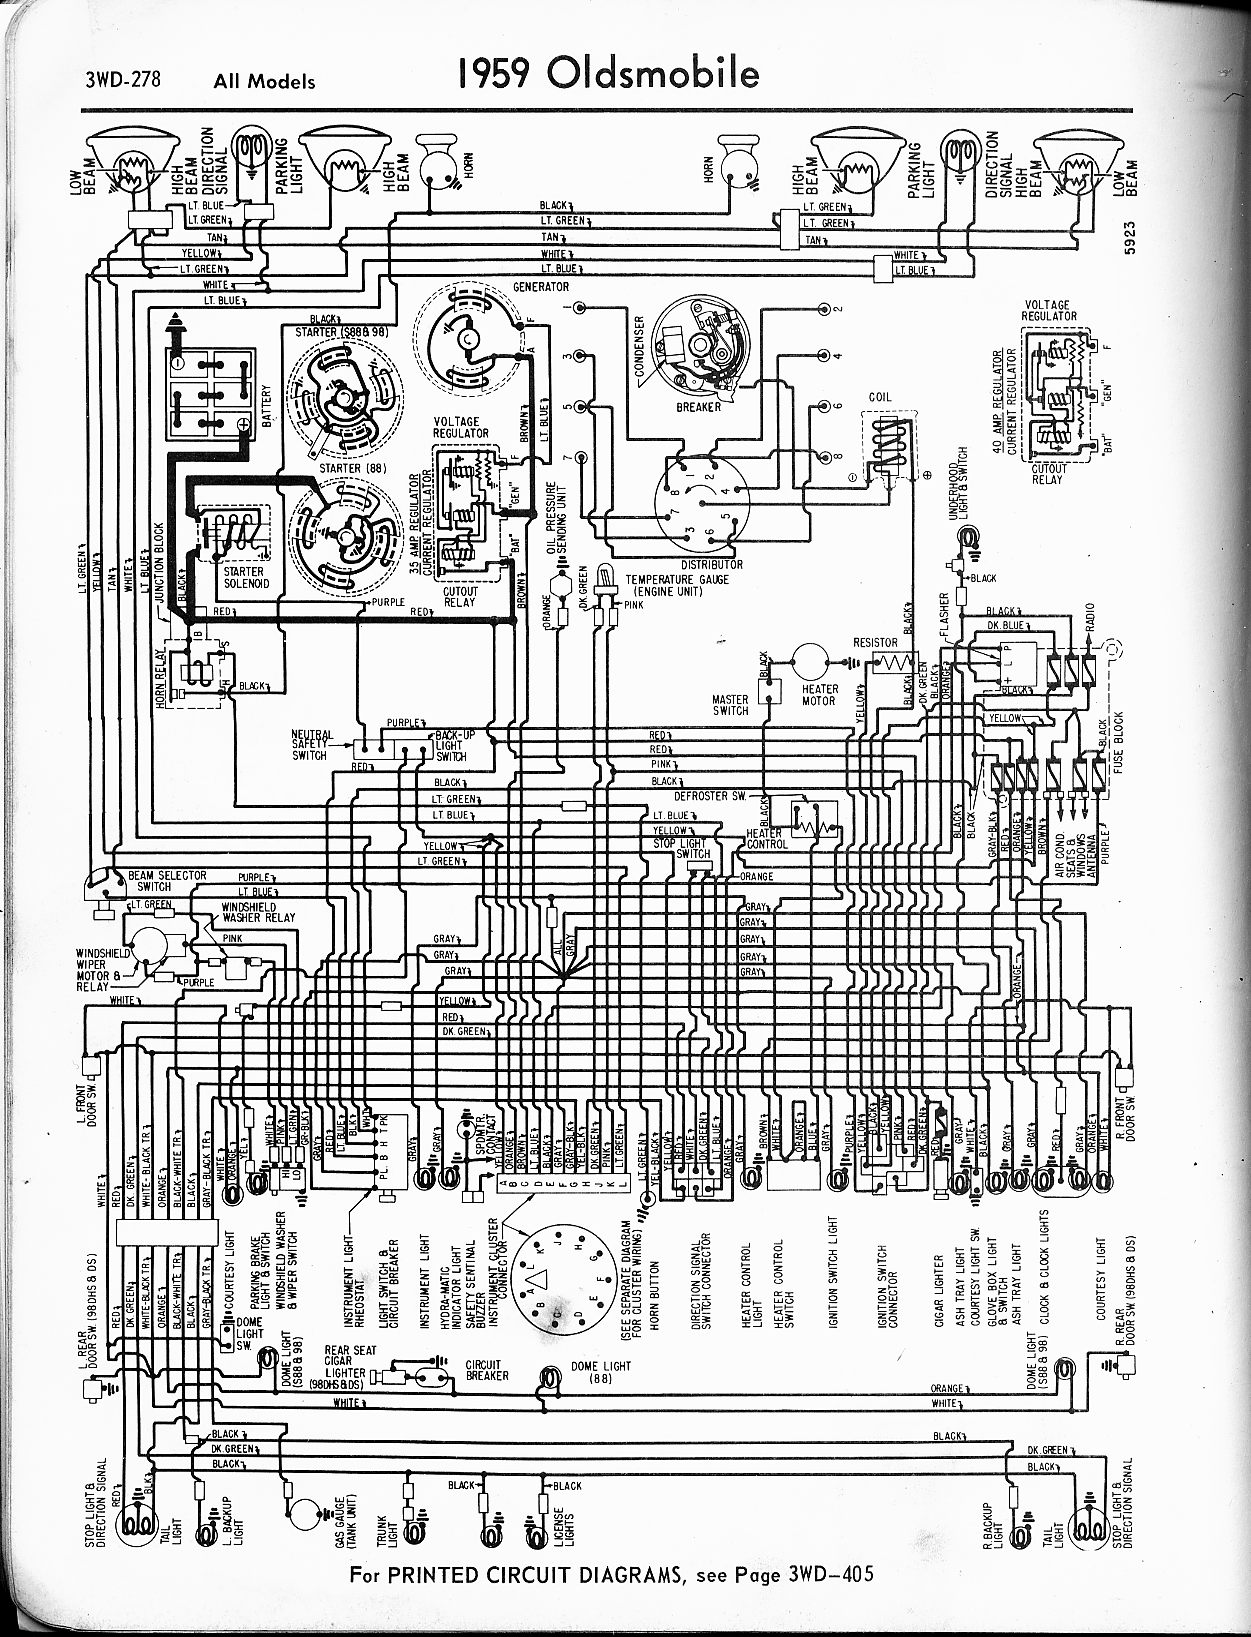 MWire5765 278?quality\\\=80\\\&strip\\\=all diagrams 10961188 layout for 2003 sienna fuse box toyota sienna 2004 toyota sienna fuse box diagram at mifinder.co